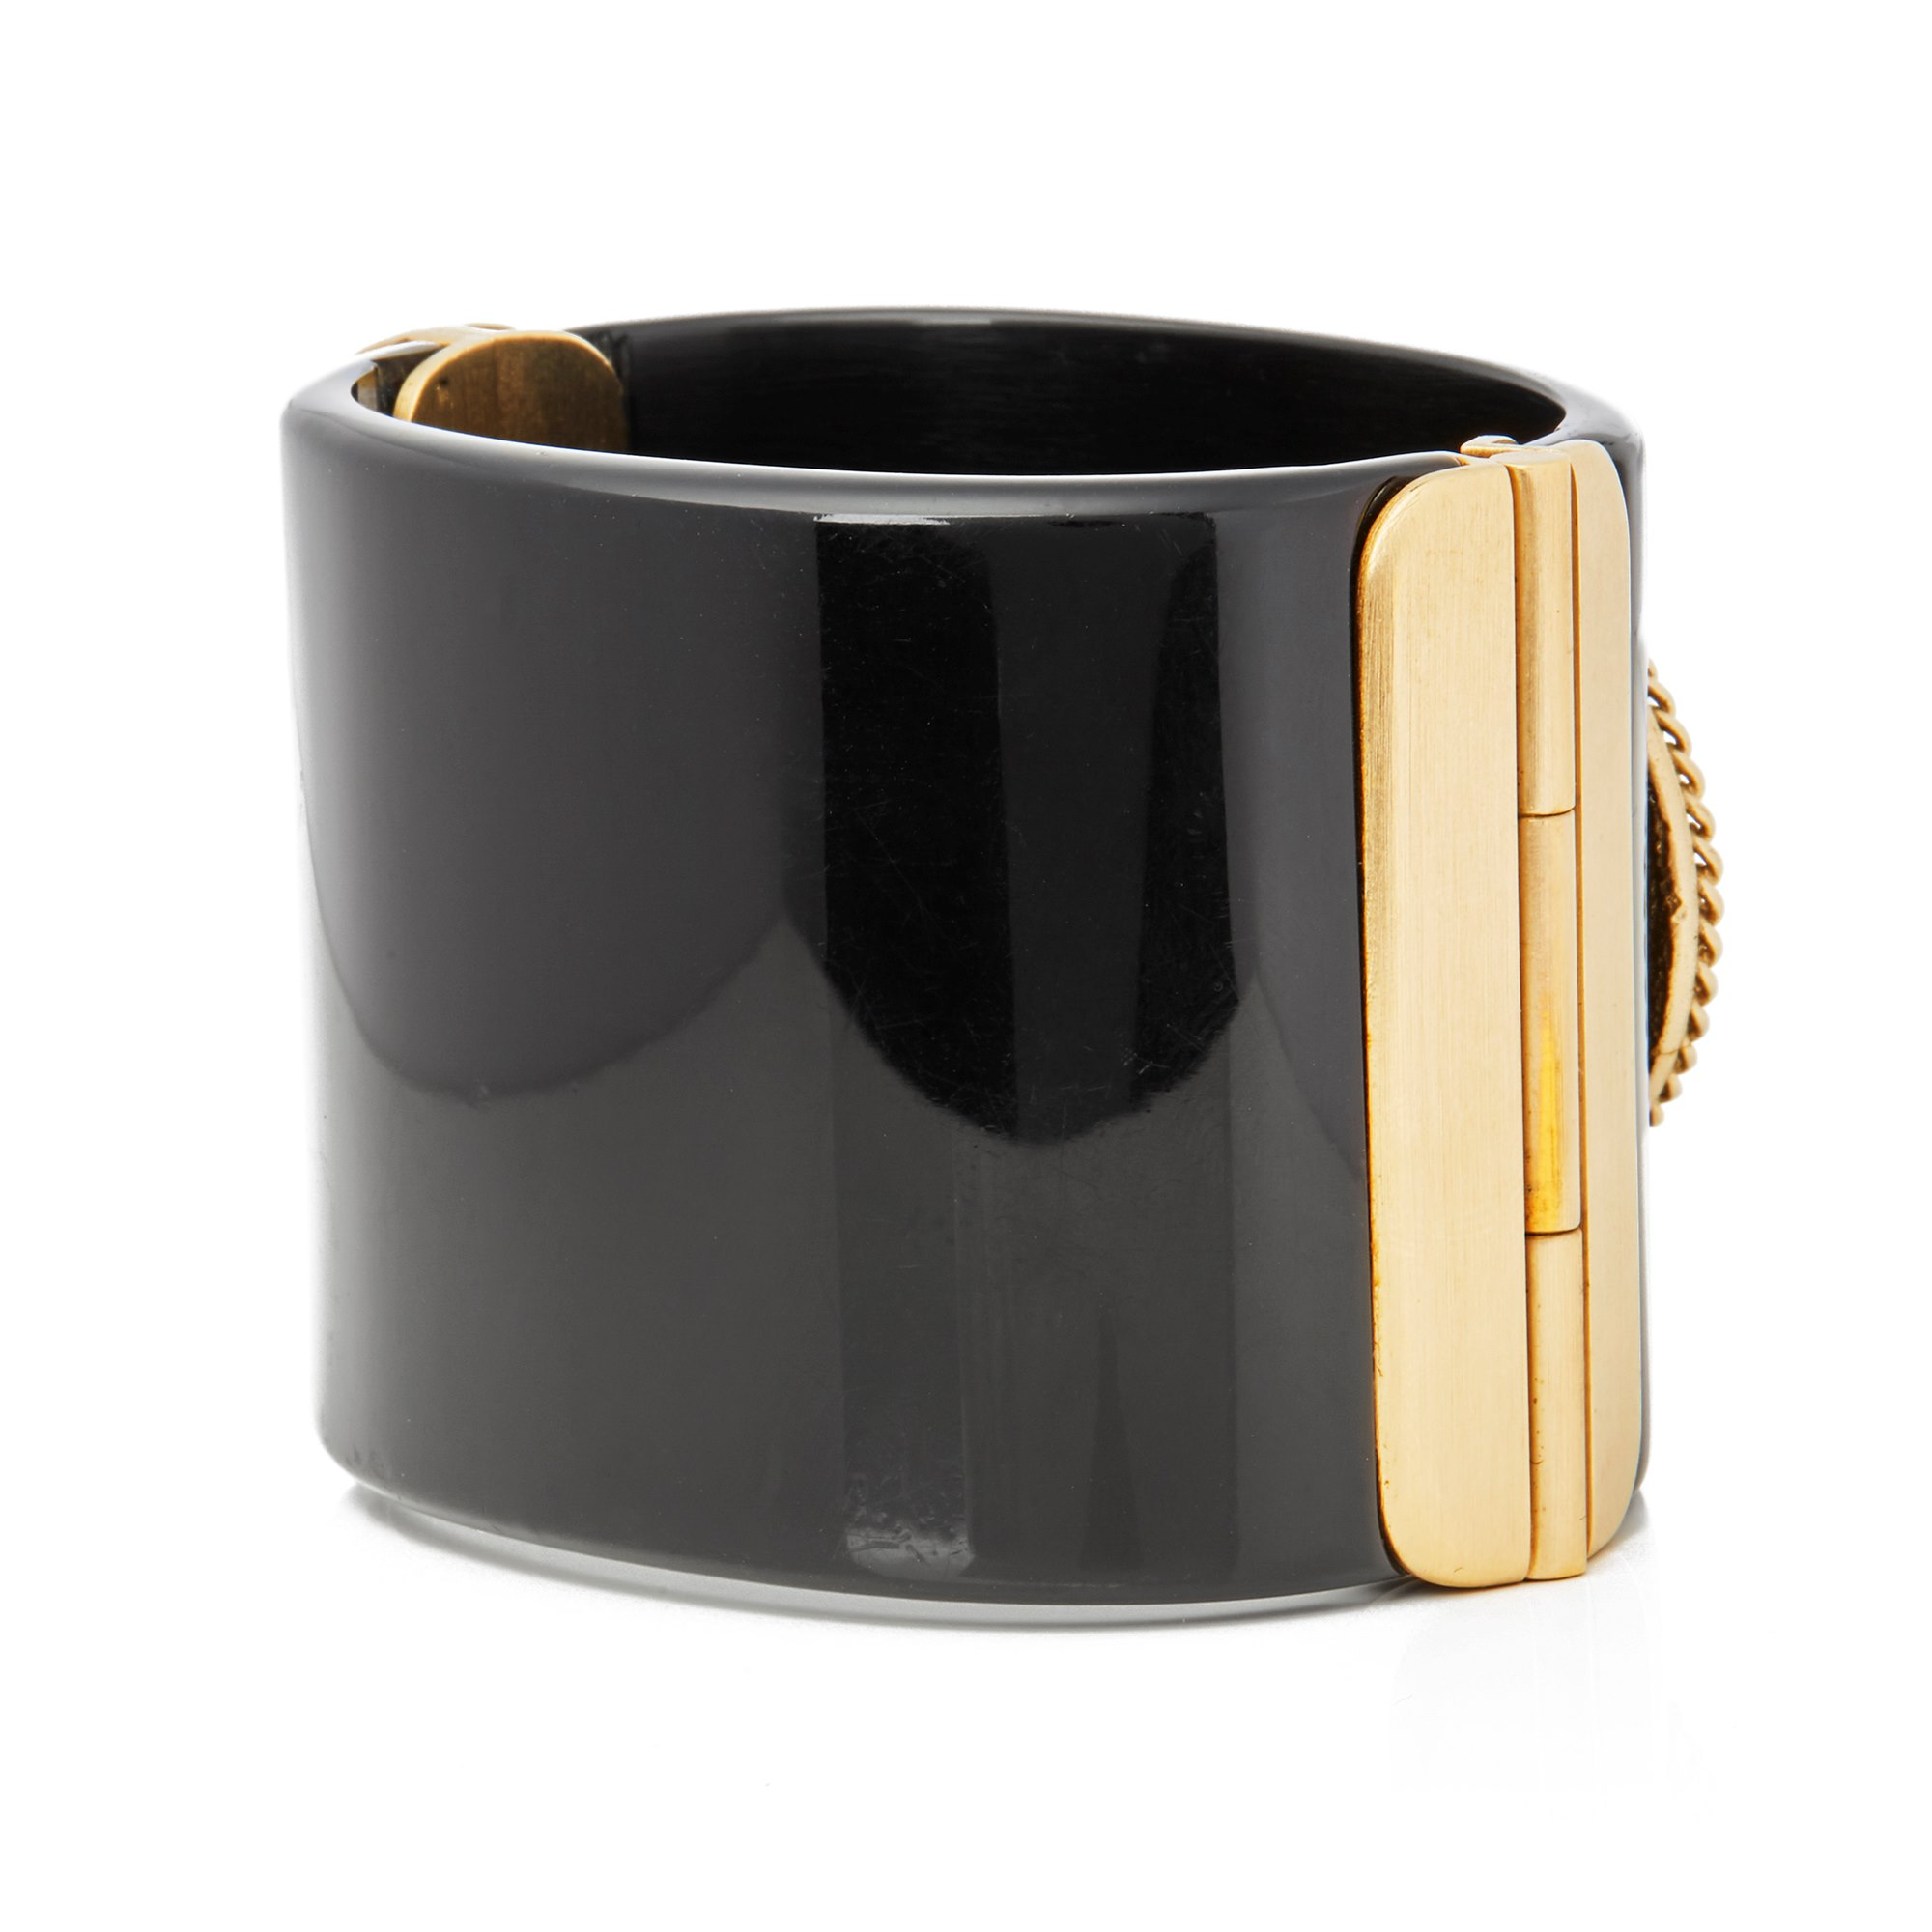 Chanel Gold Rue Cambon CC Cuff Bangle